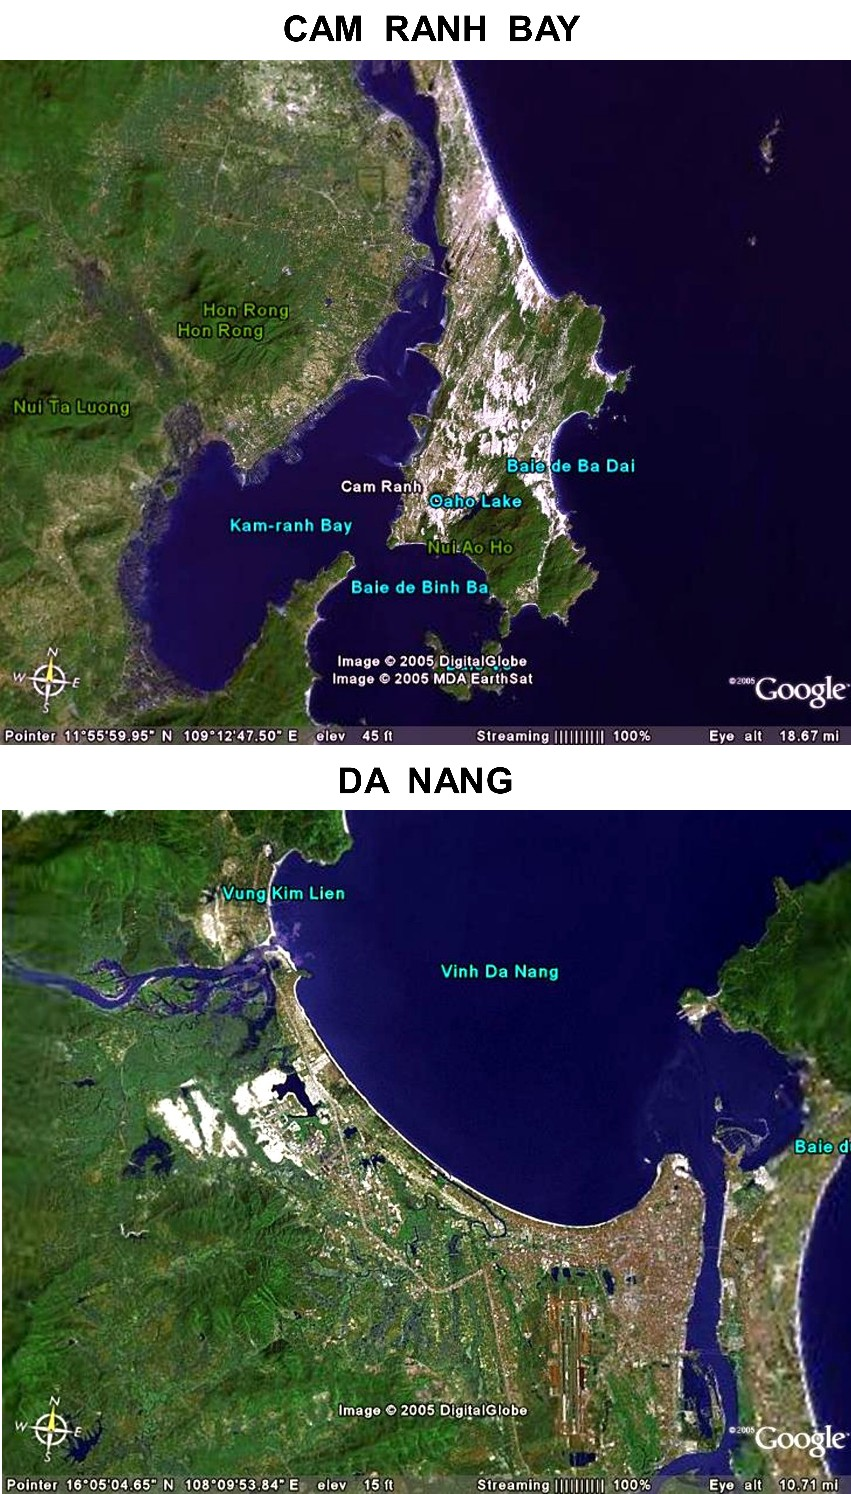 da_nang_and_cam_ranh_bay.jpg